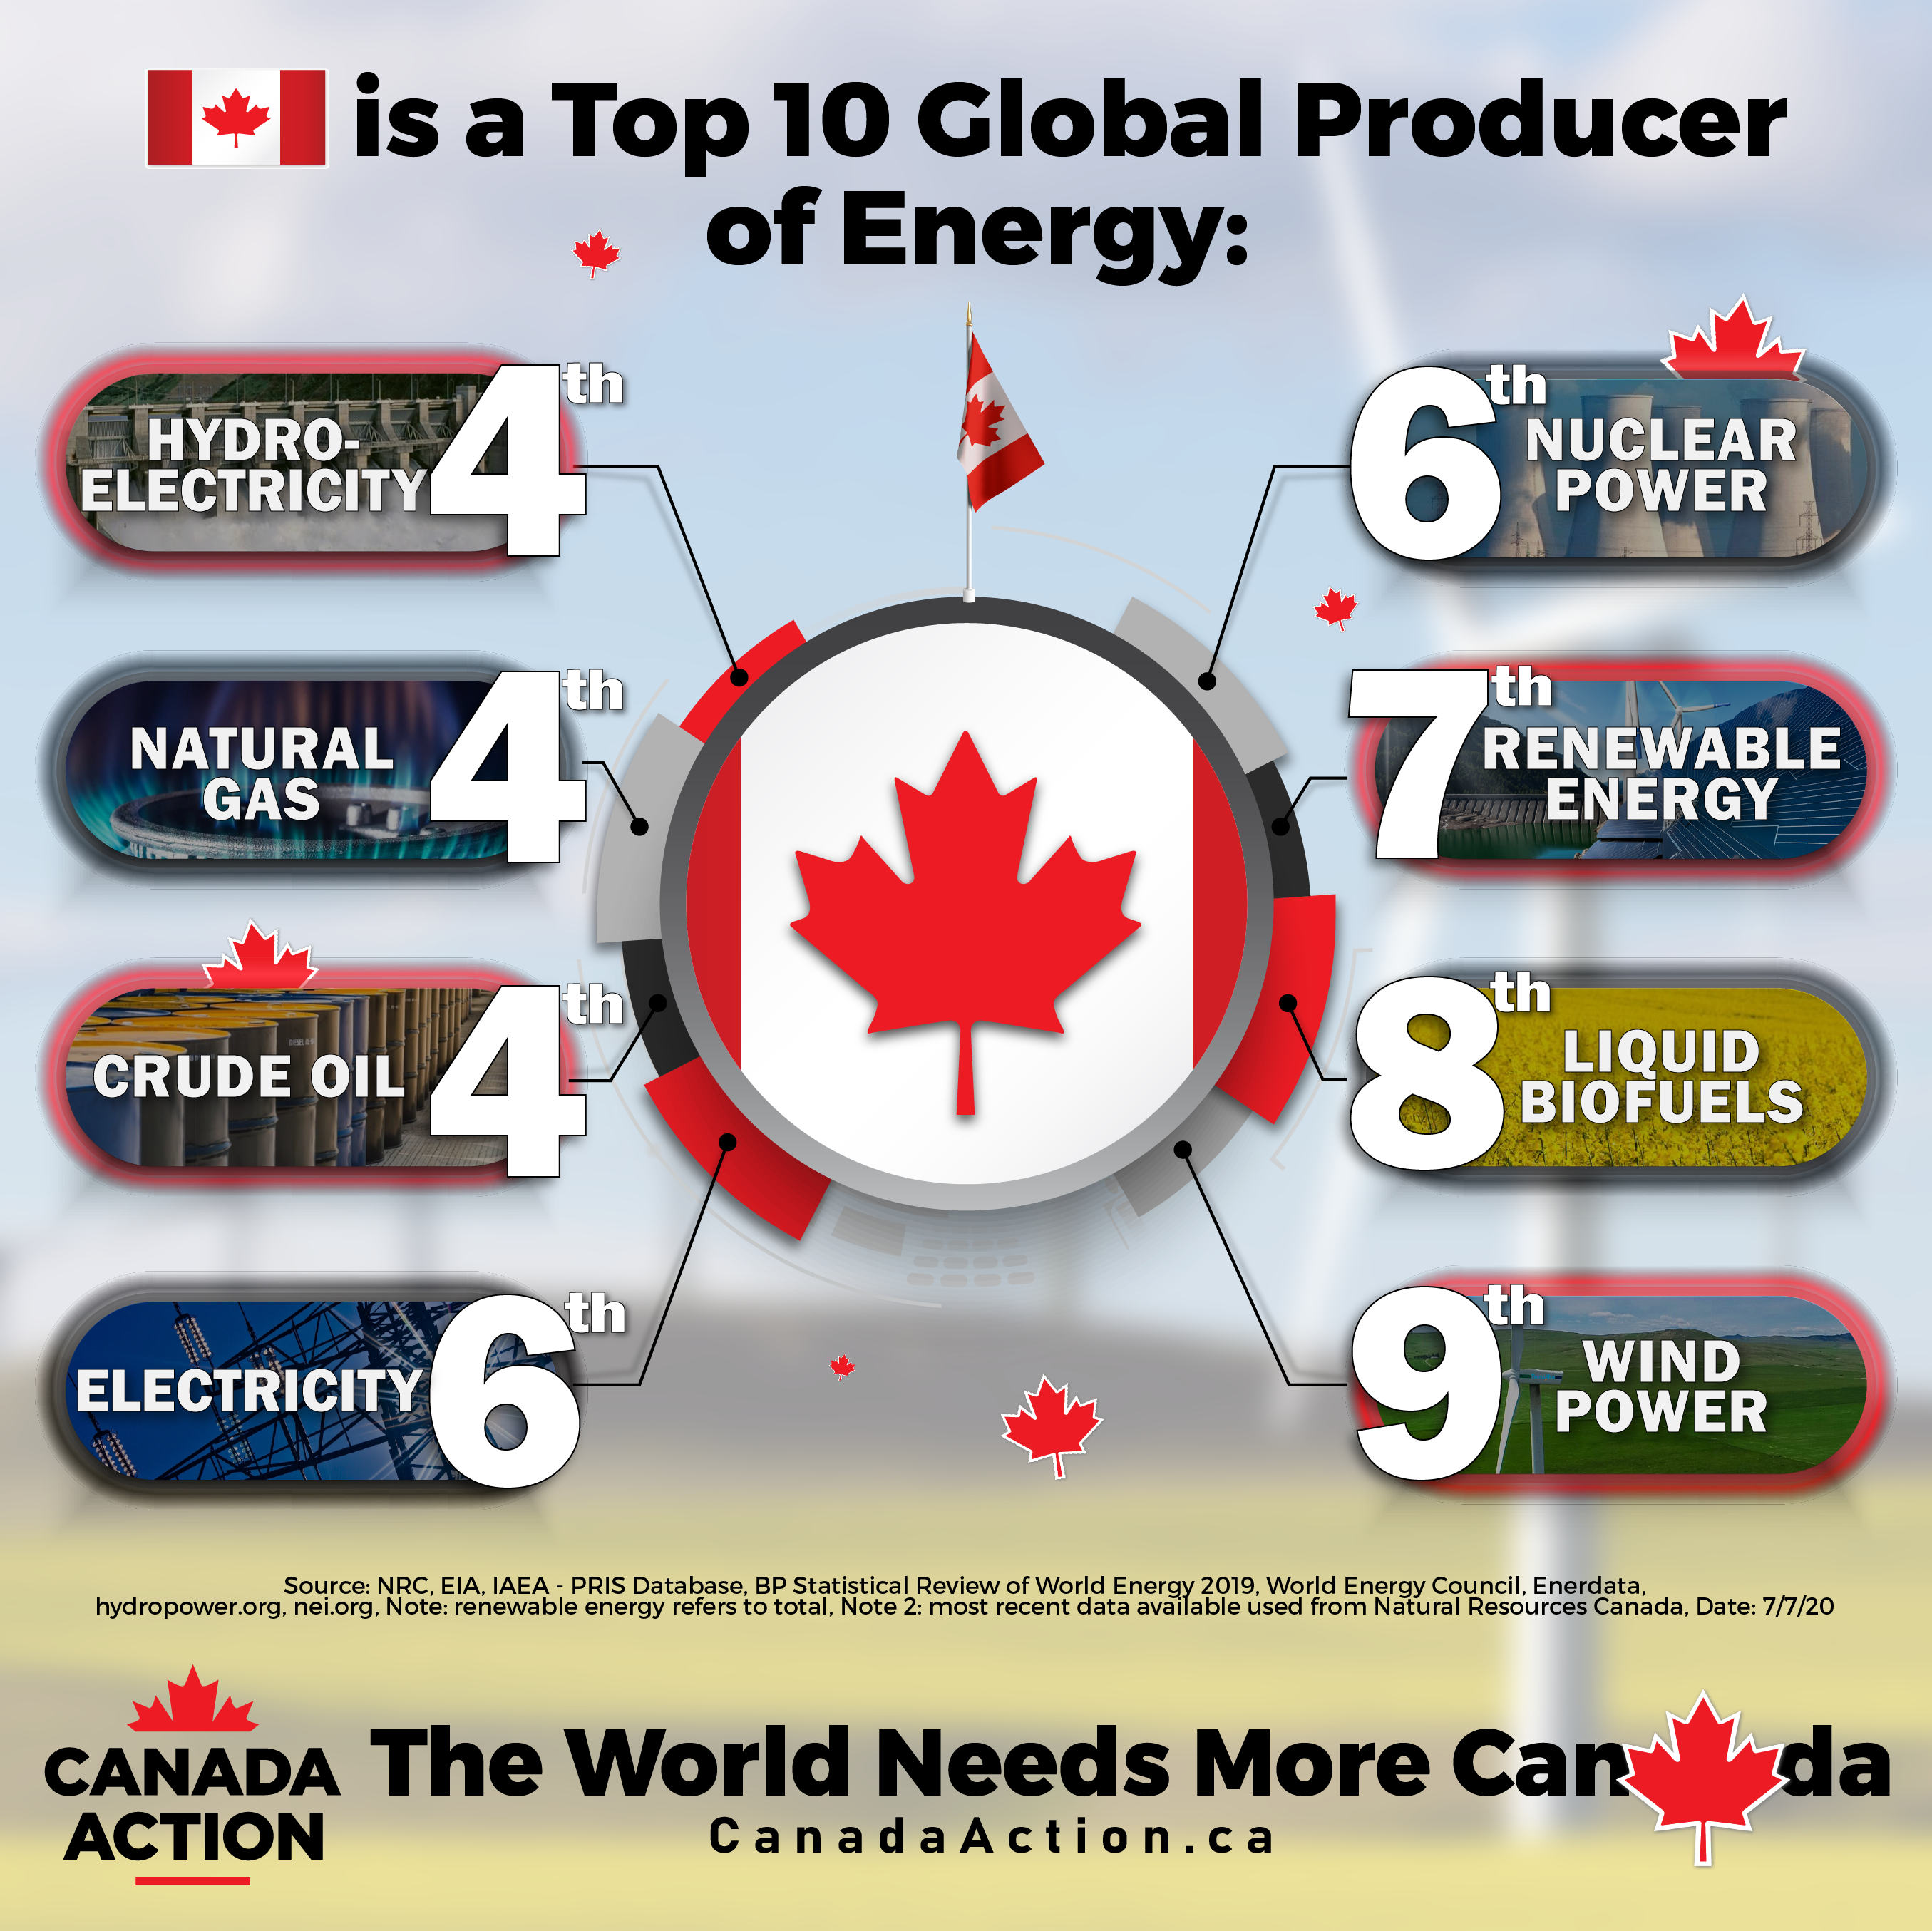 Canada is a Top 10 Global Producer of Many Forms of energy